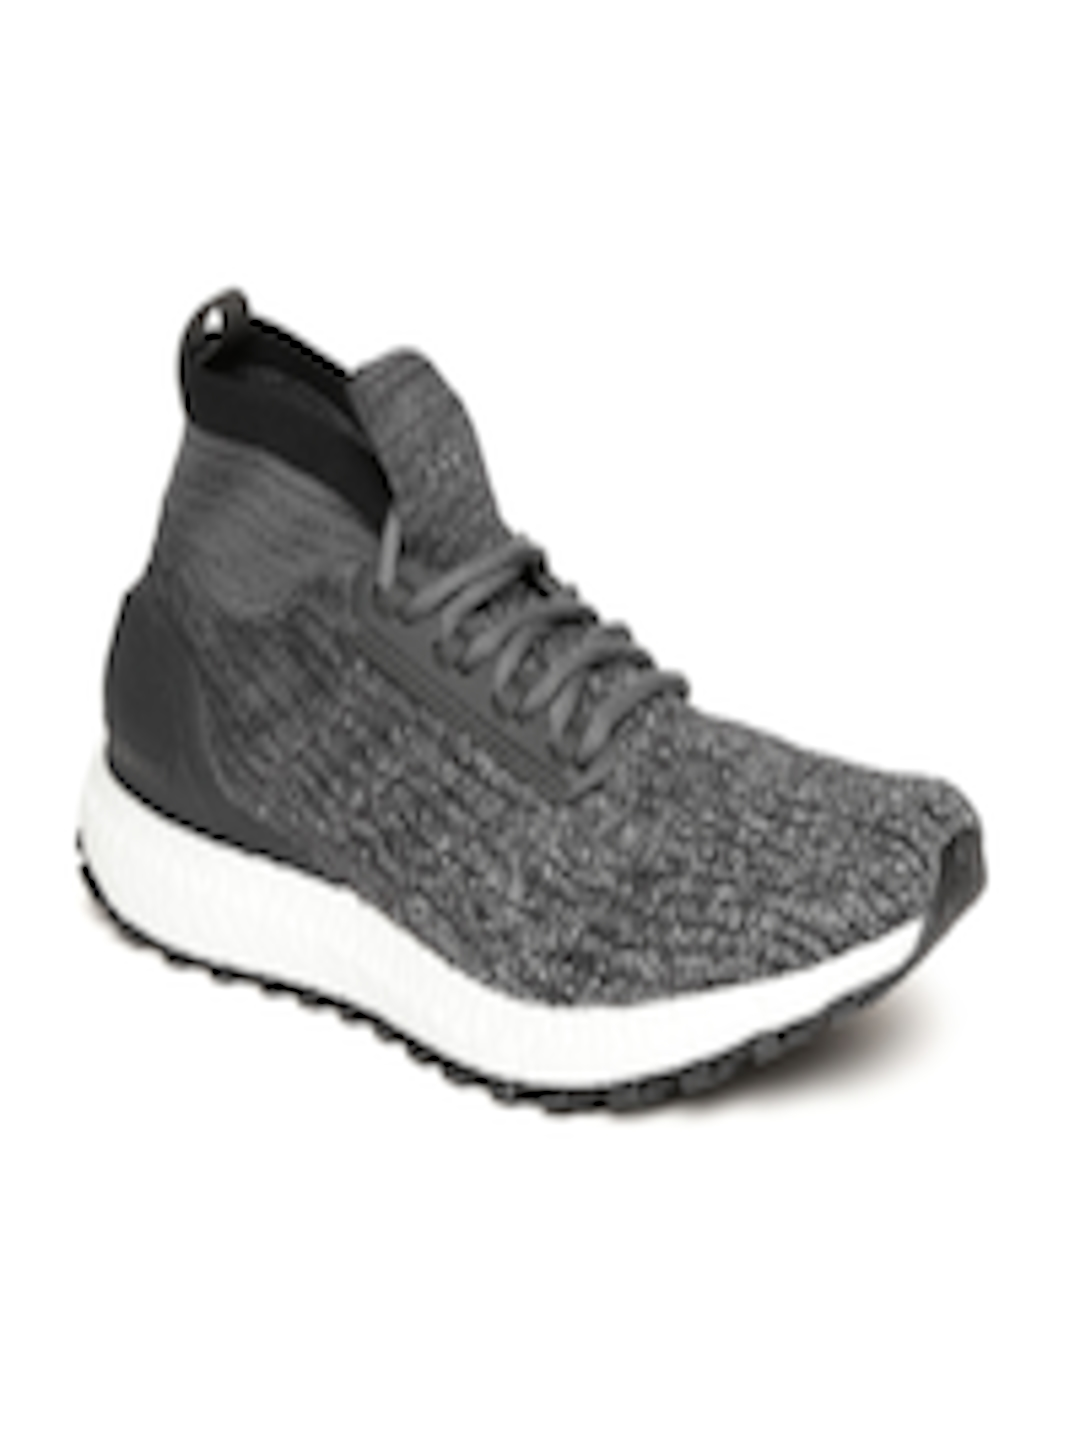 6f82836ef8dd Buy ADIDAS Men Charcoal Grey Ultraboost All Terrain Ltd Running Shoes -  Sports Shoes for Men 2410036